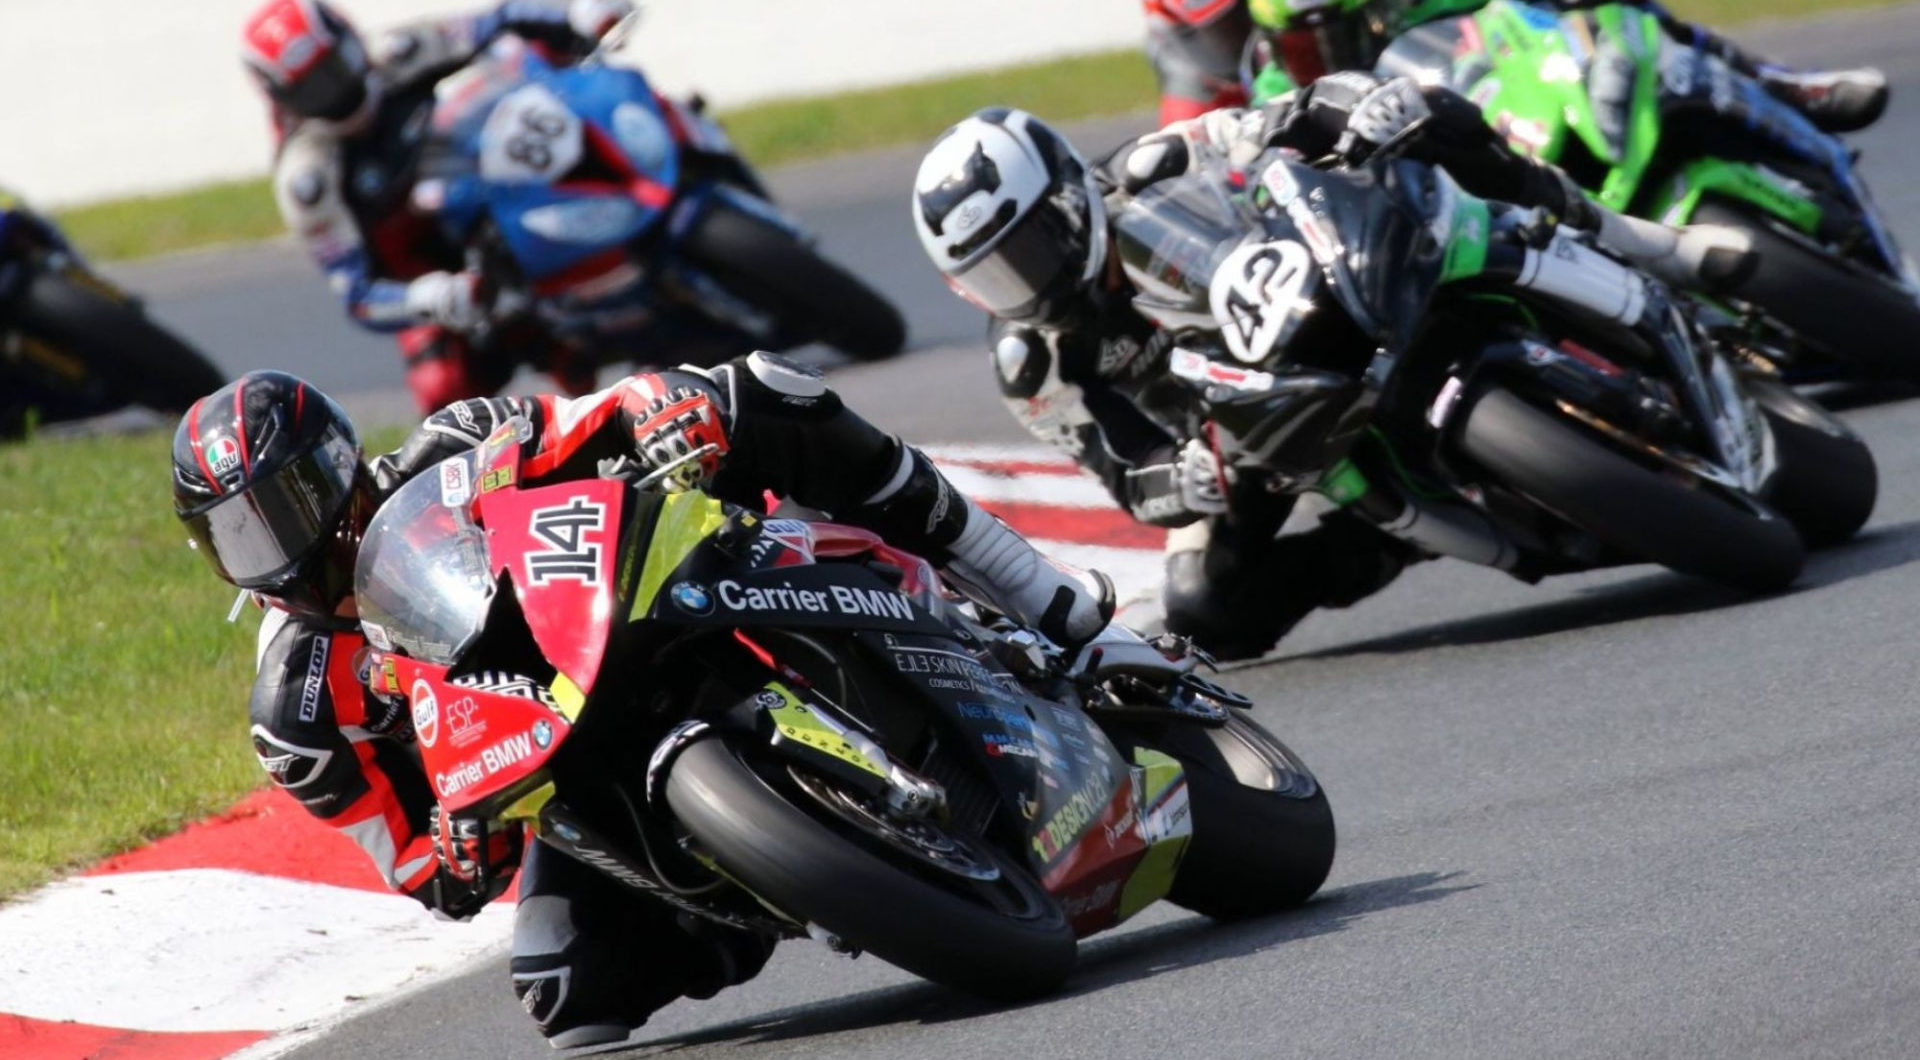 Action from the 2019 Mopar Canadian Superbike Championship. Photo by Rob O'Brien, courtesy of CSBK/PMP.